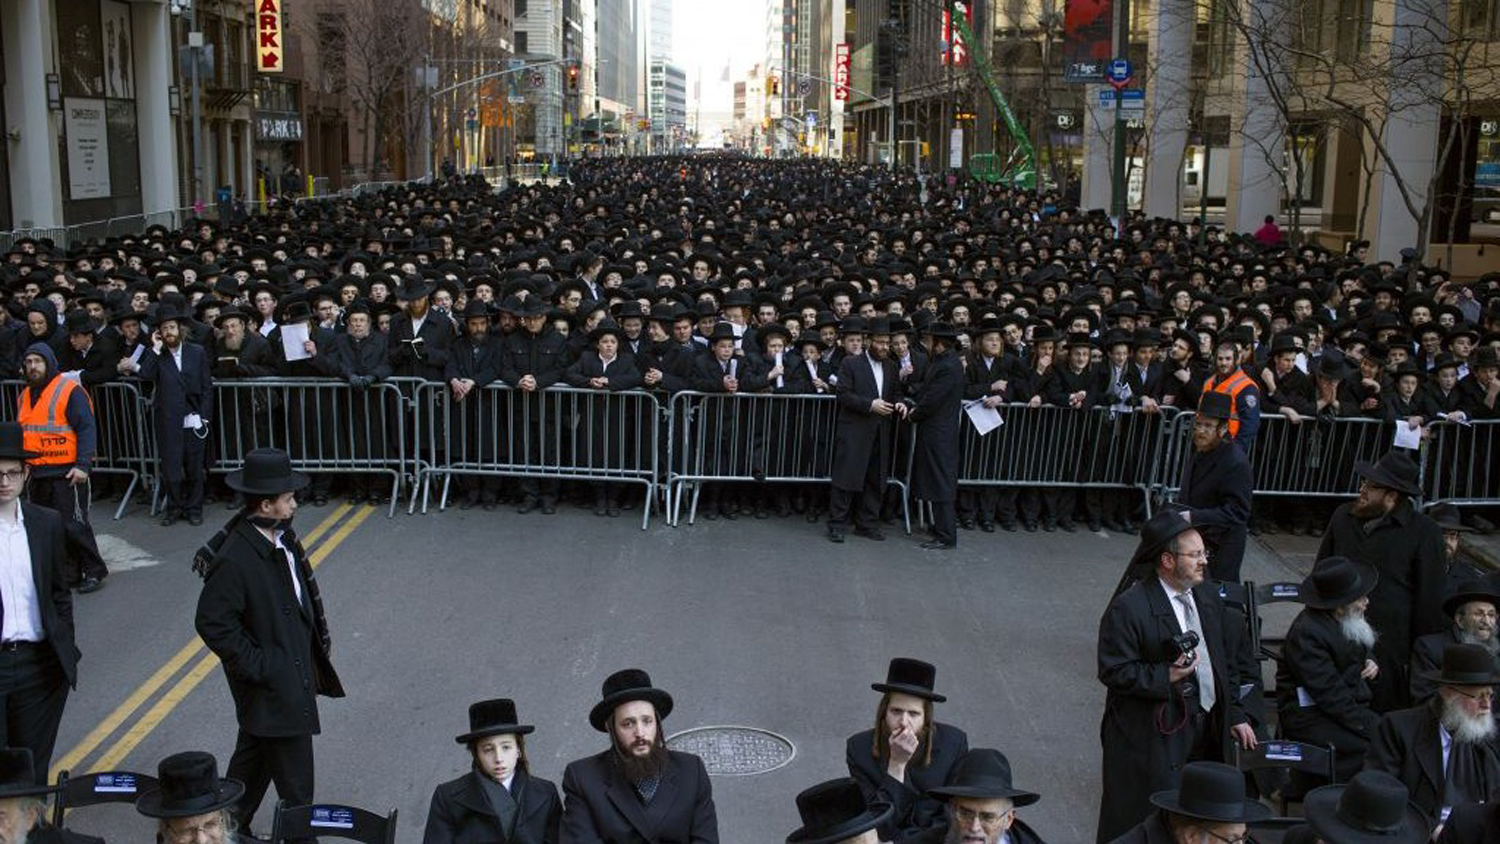 A group of Haredi Jewish people hold a demonstration on Wall Street in opposition to the Israeli draft law in 2014.